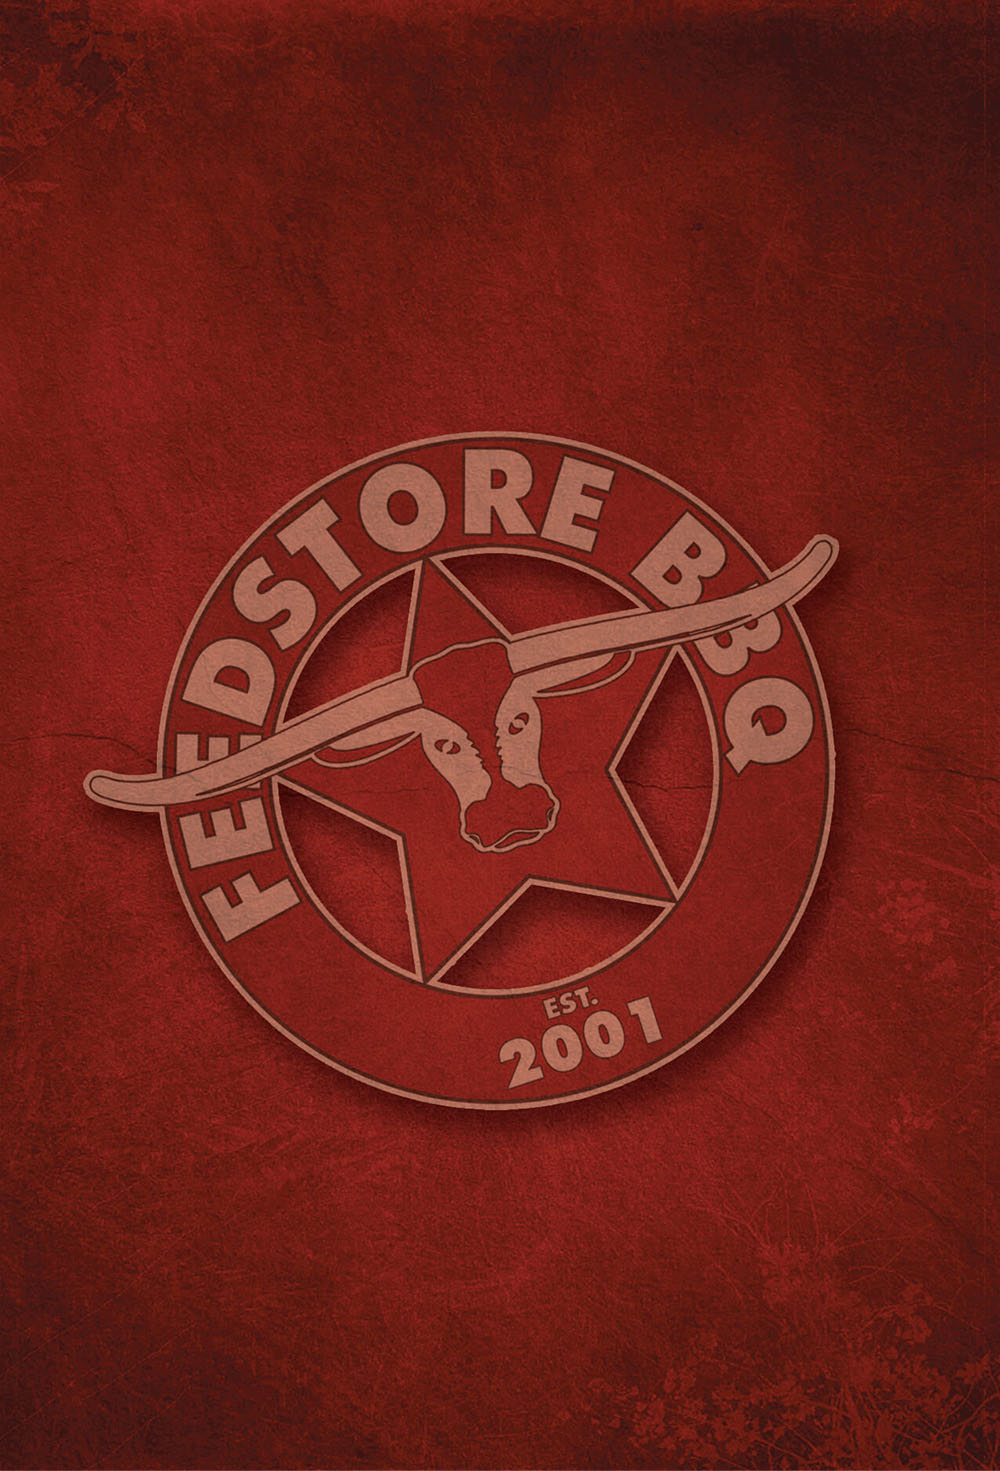 A background image in red with embossed Feedstore logo